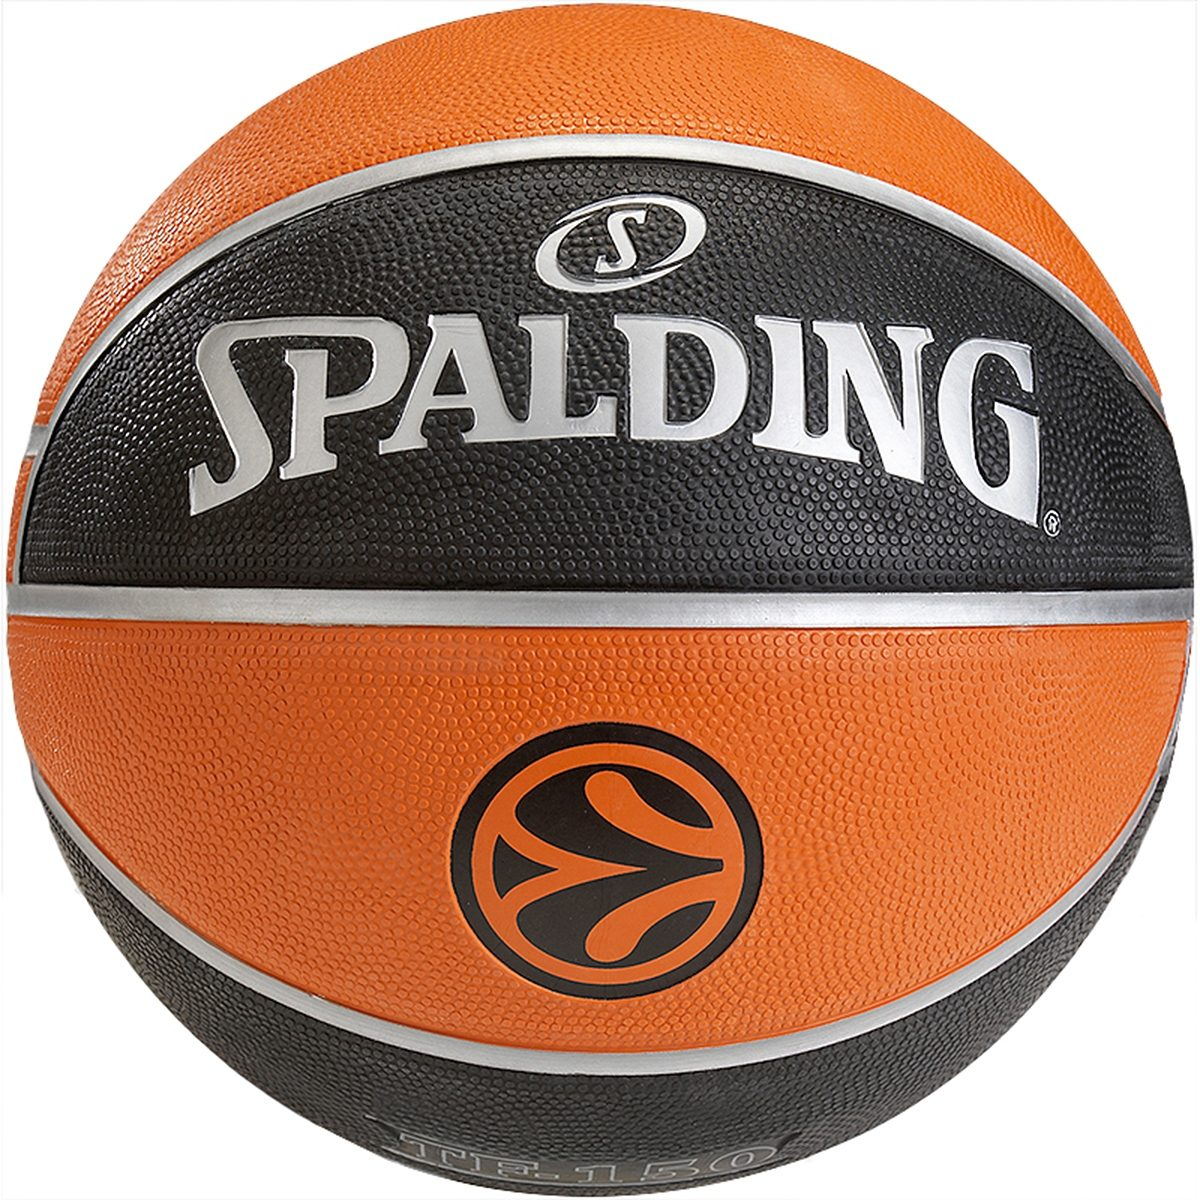 SPALDING Euroleague TF 150 Outdoor Basketball